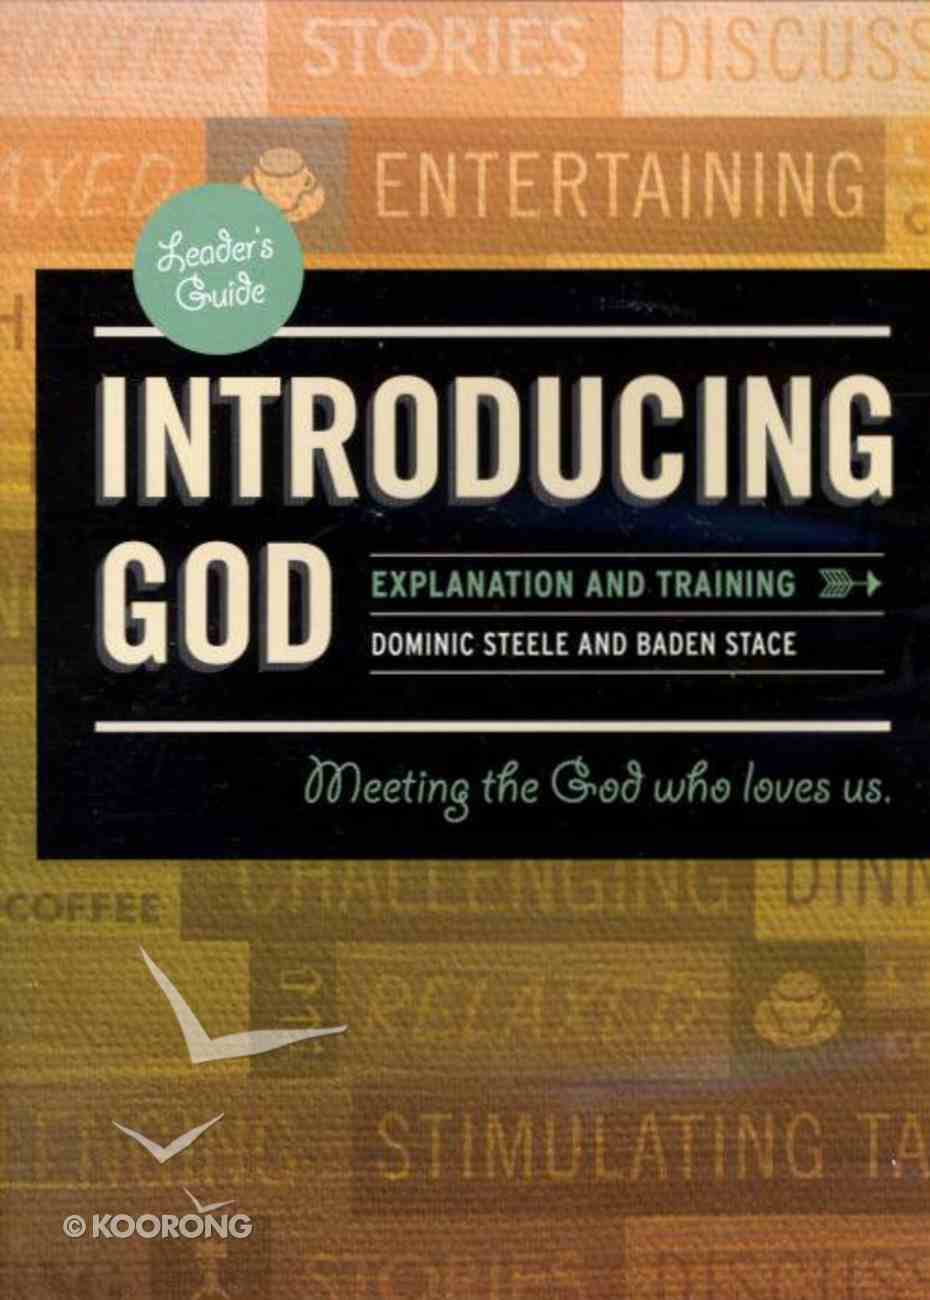 Introducing God Course (Training Dvd) DVD